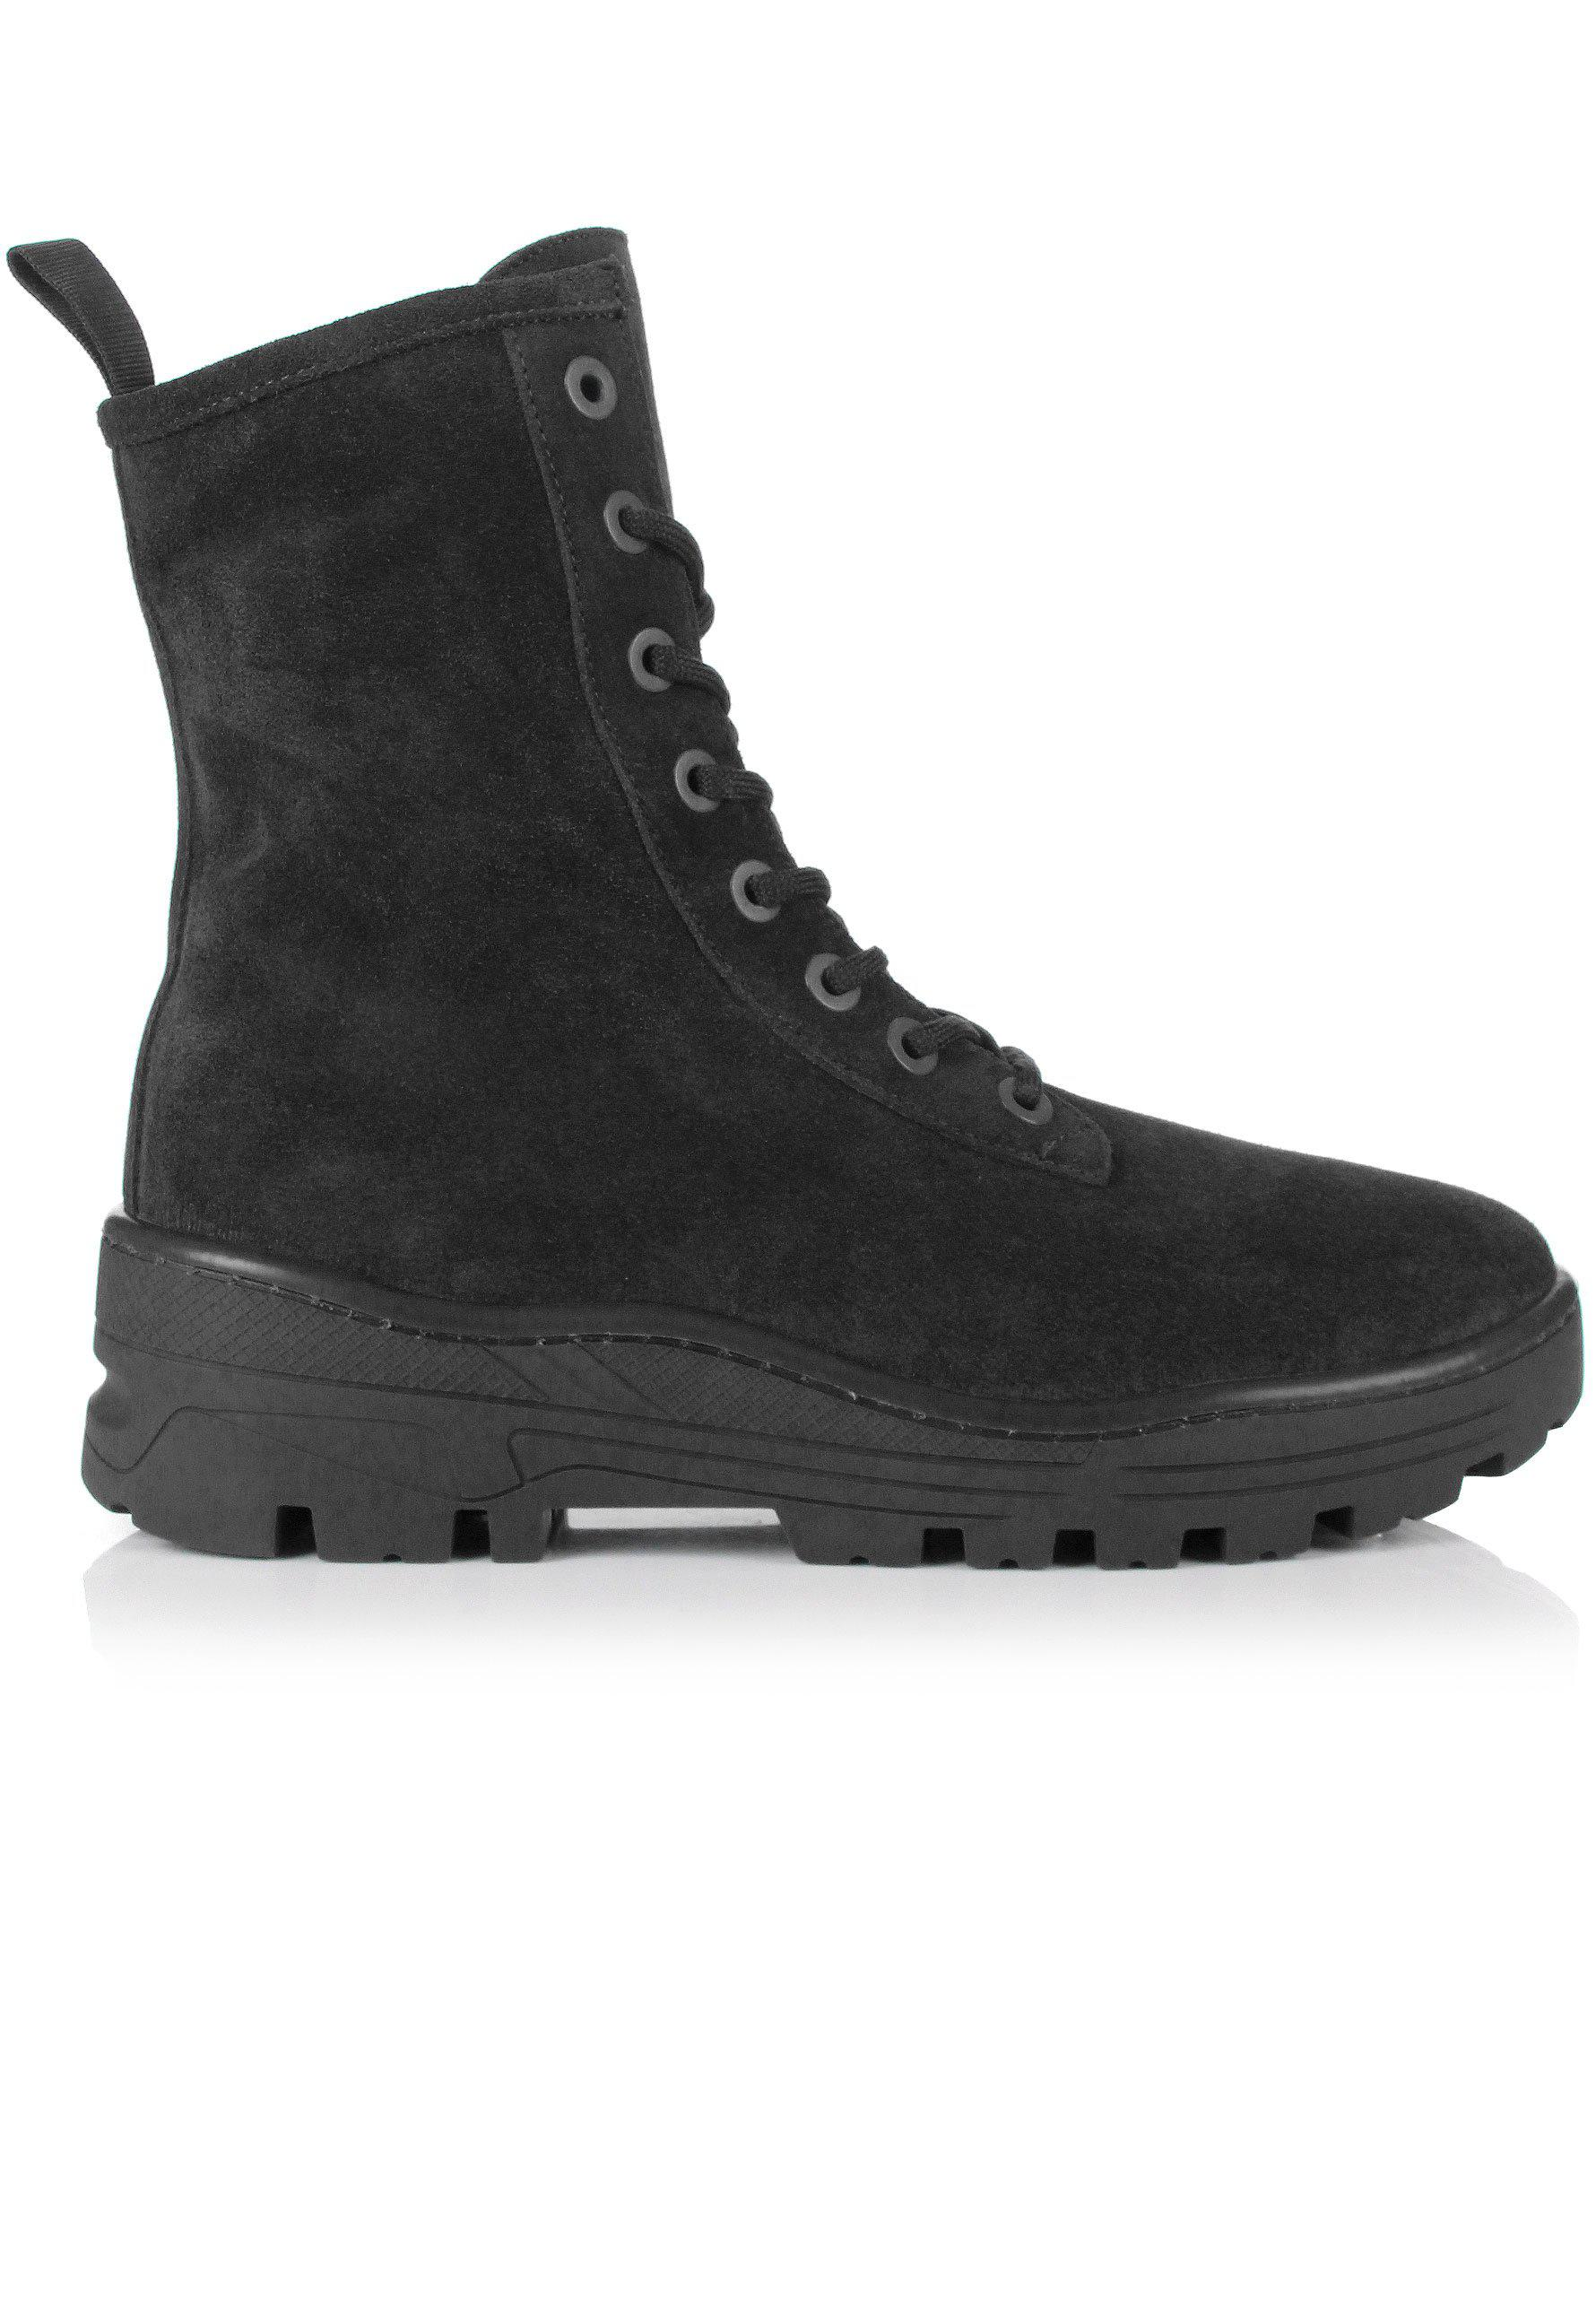 0496824b059 Lyst - Yeezy Season 6 Combat Boots Graphite in Black for Men